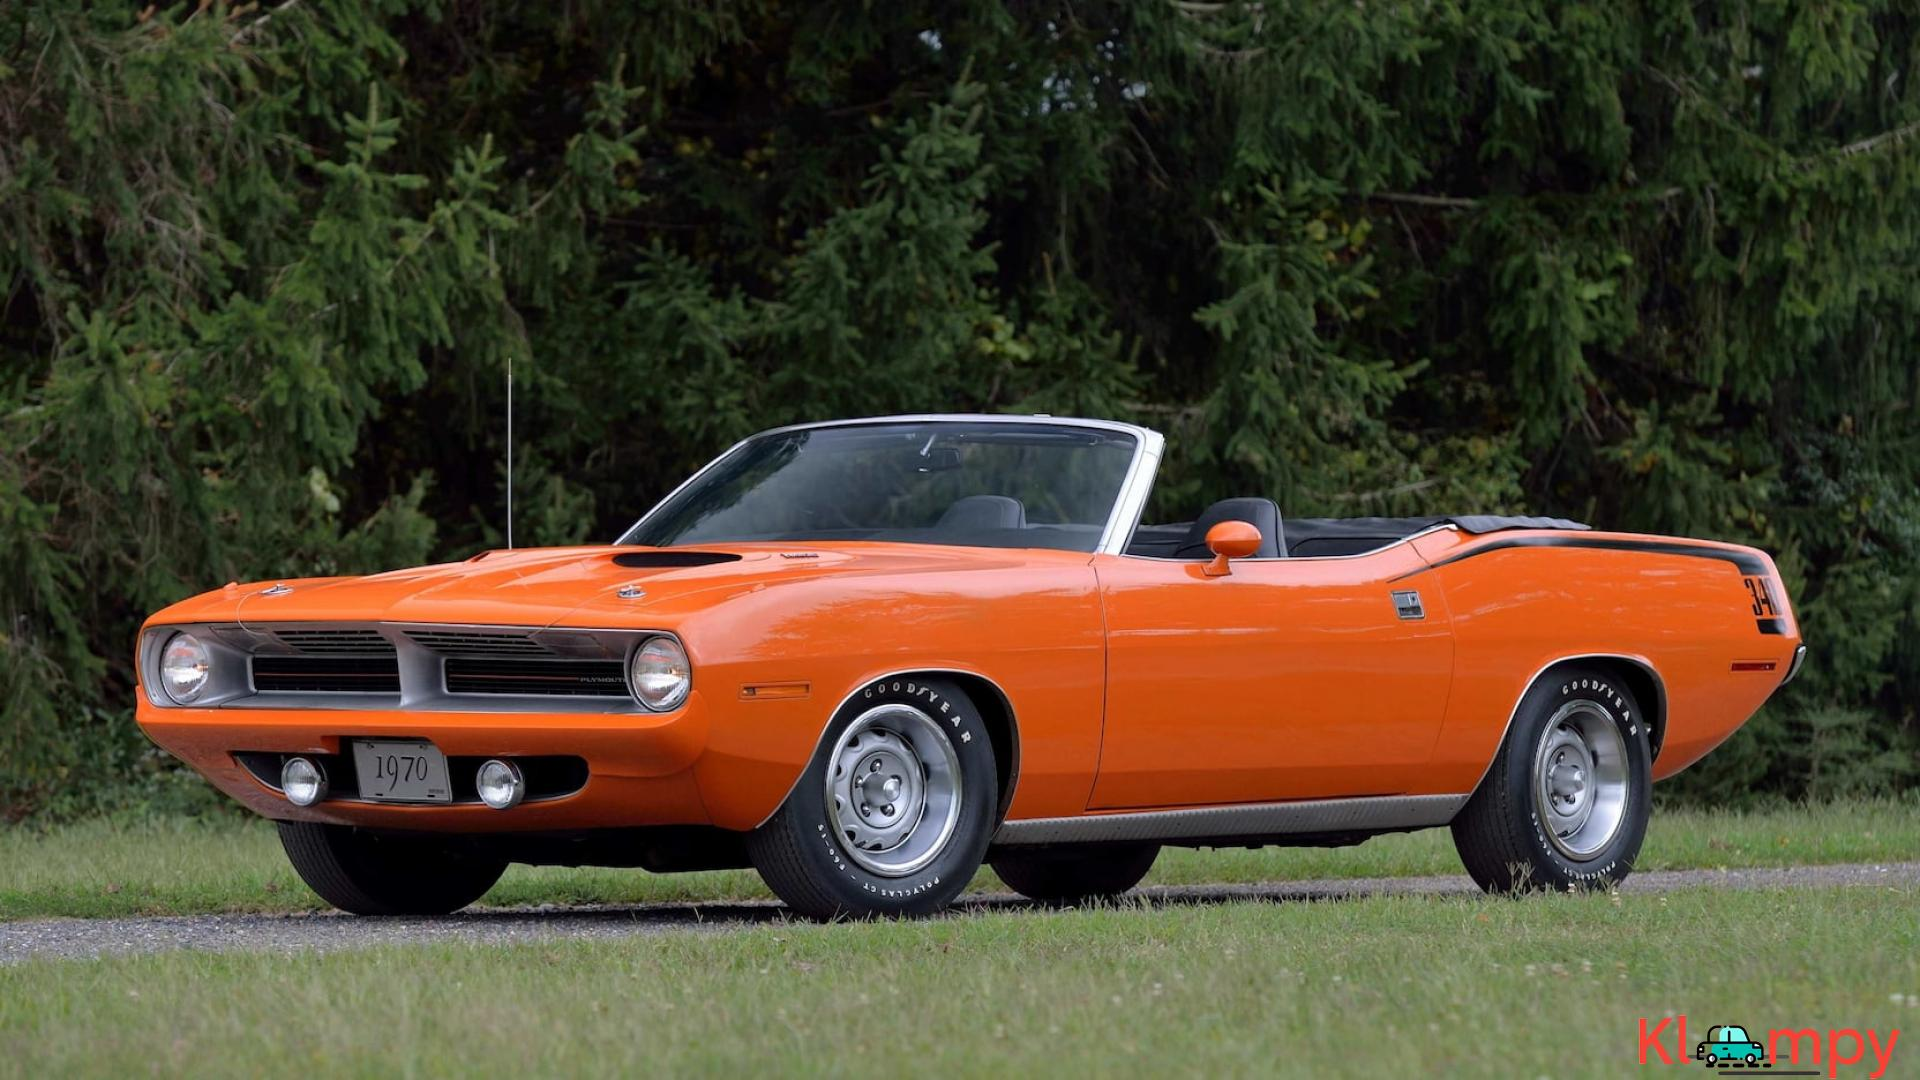 1970 Plymouth Cuda Convertible 340 Matching Numbers - 2/17